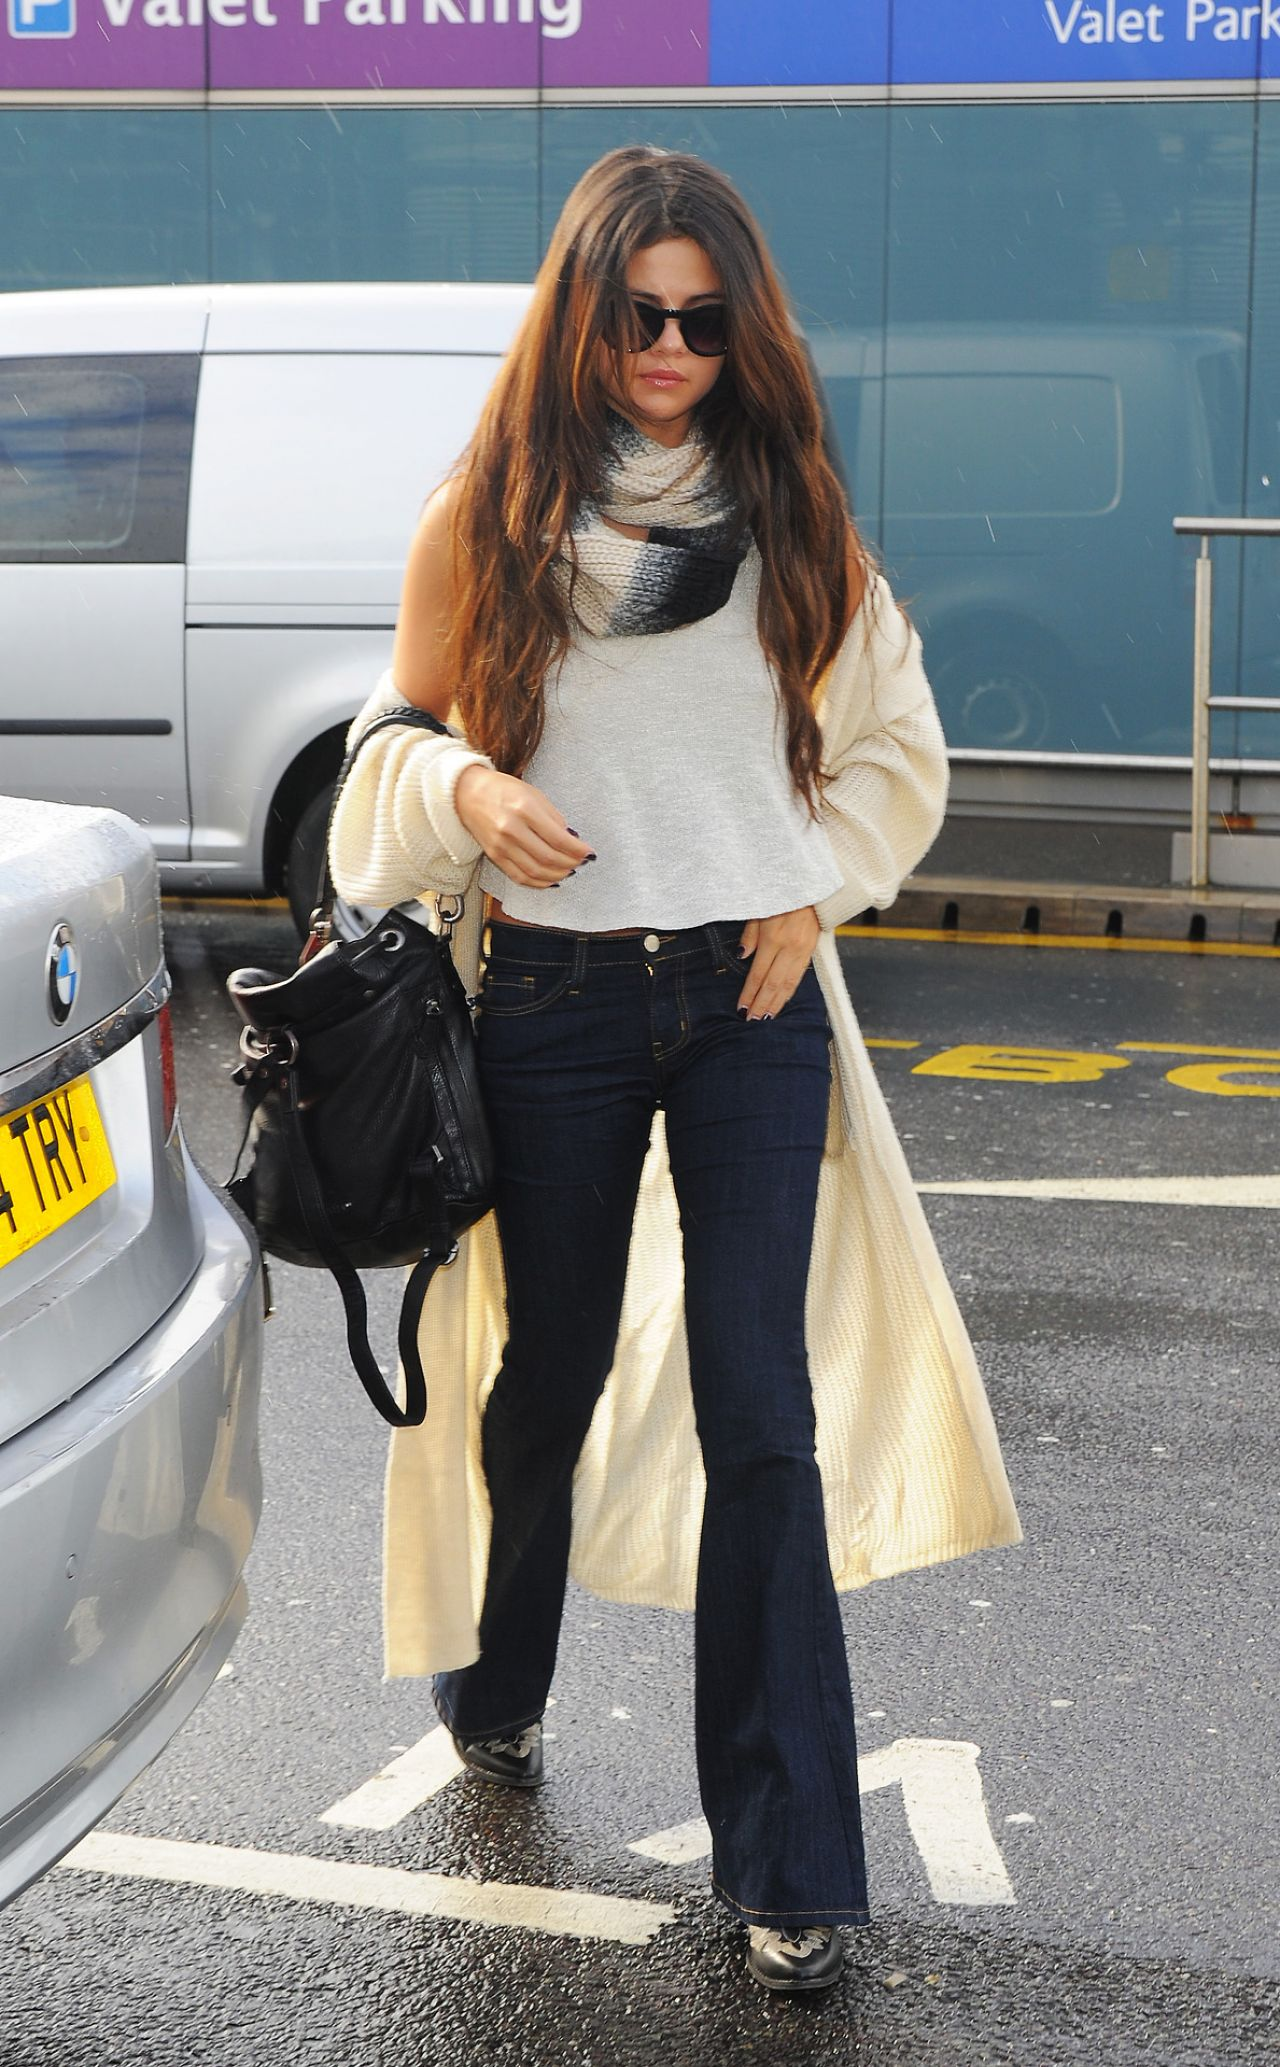 selena-gomez-street-style-at-heathrow-airport-in-london-february-2014_6